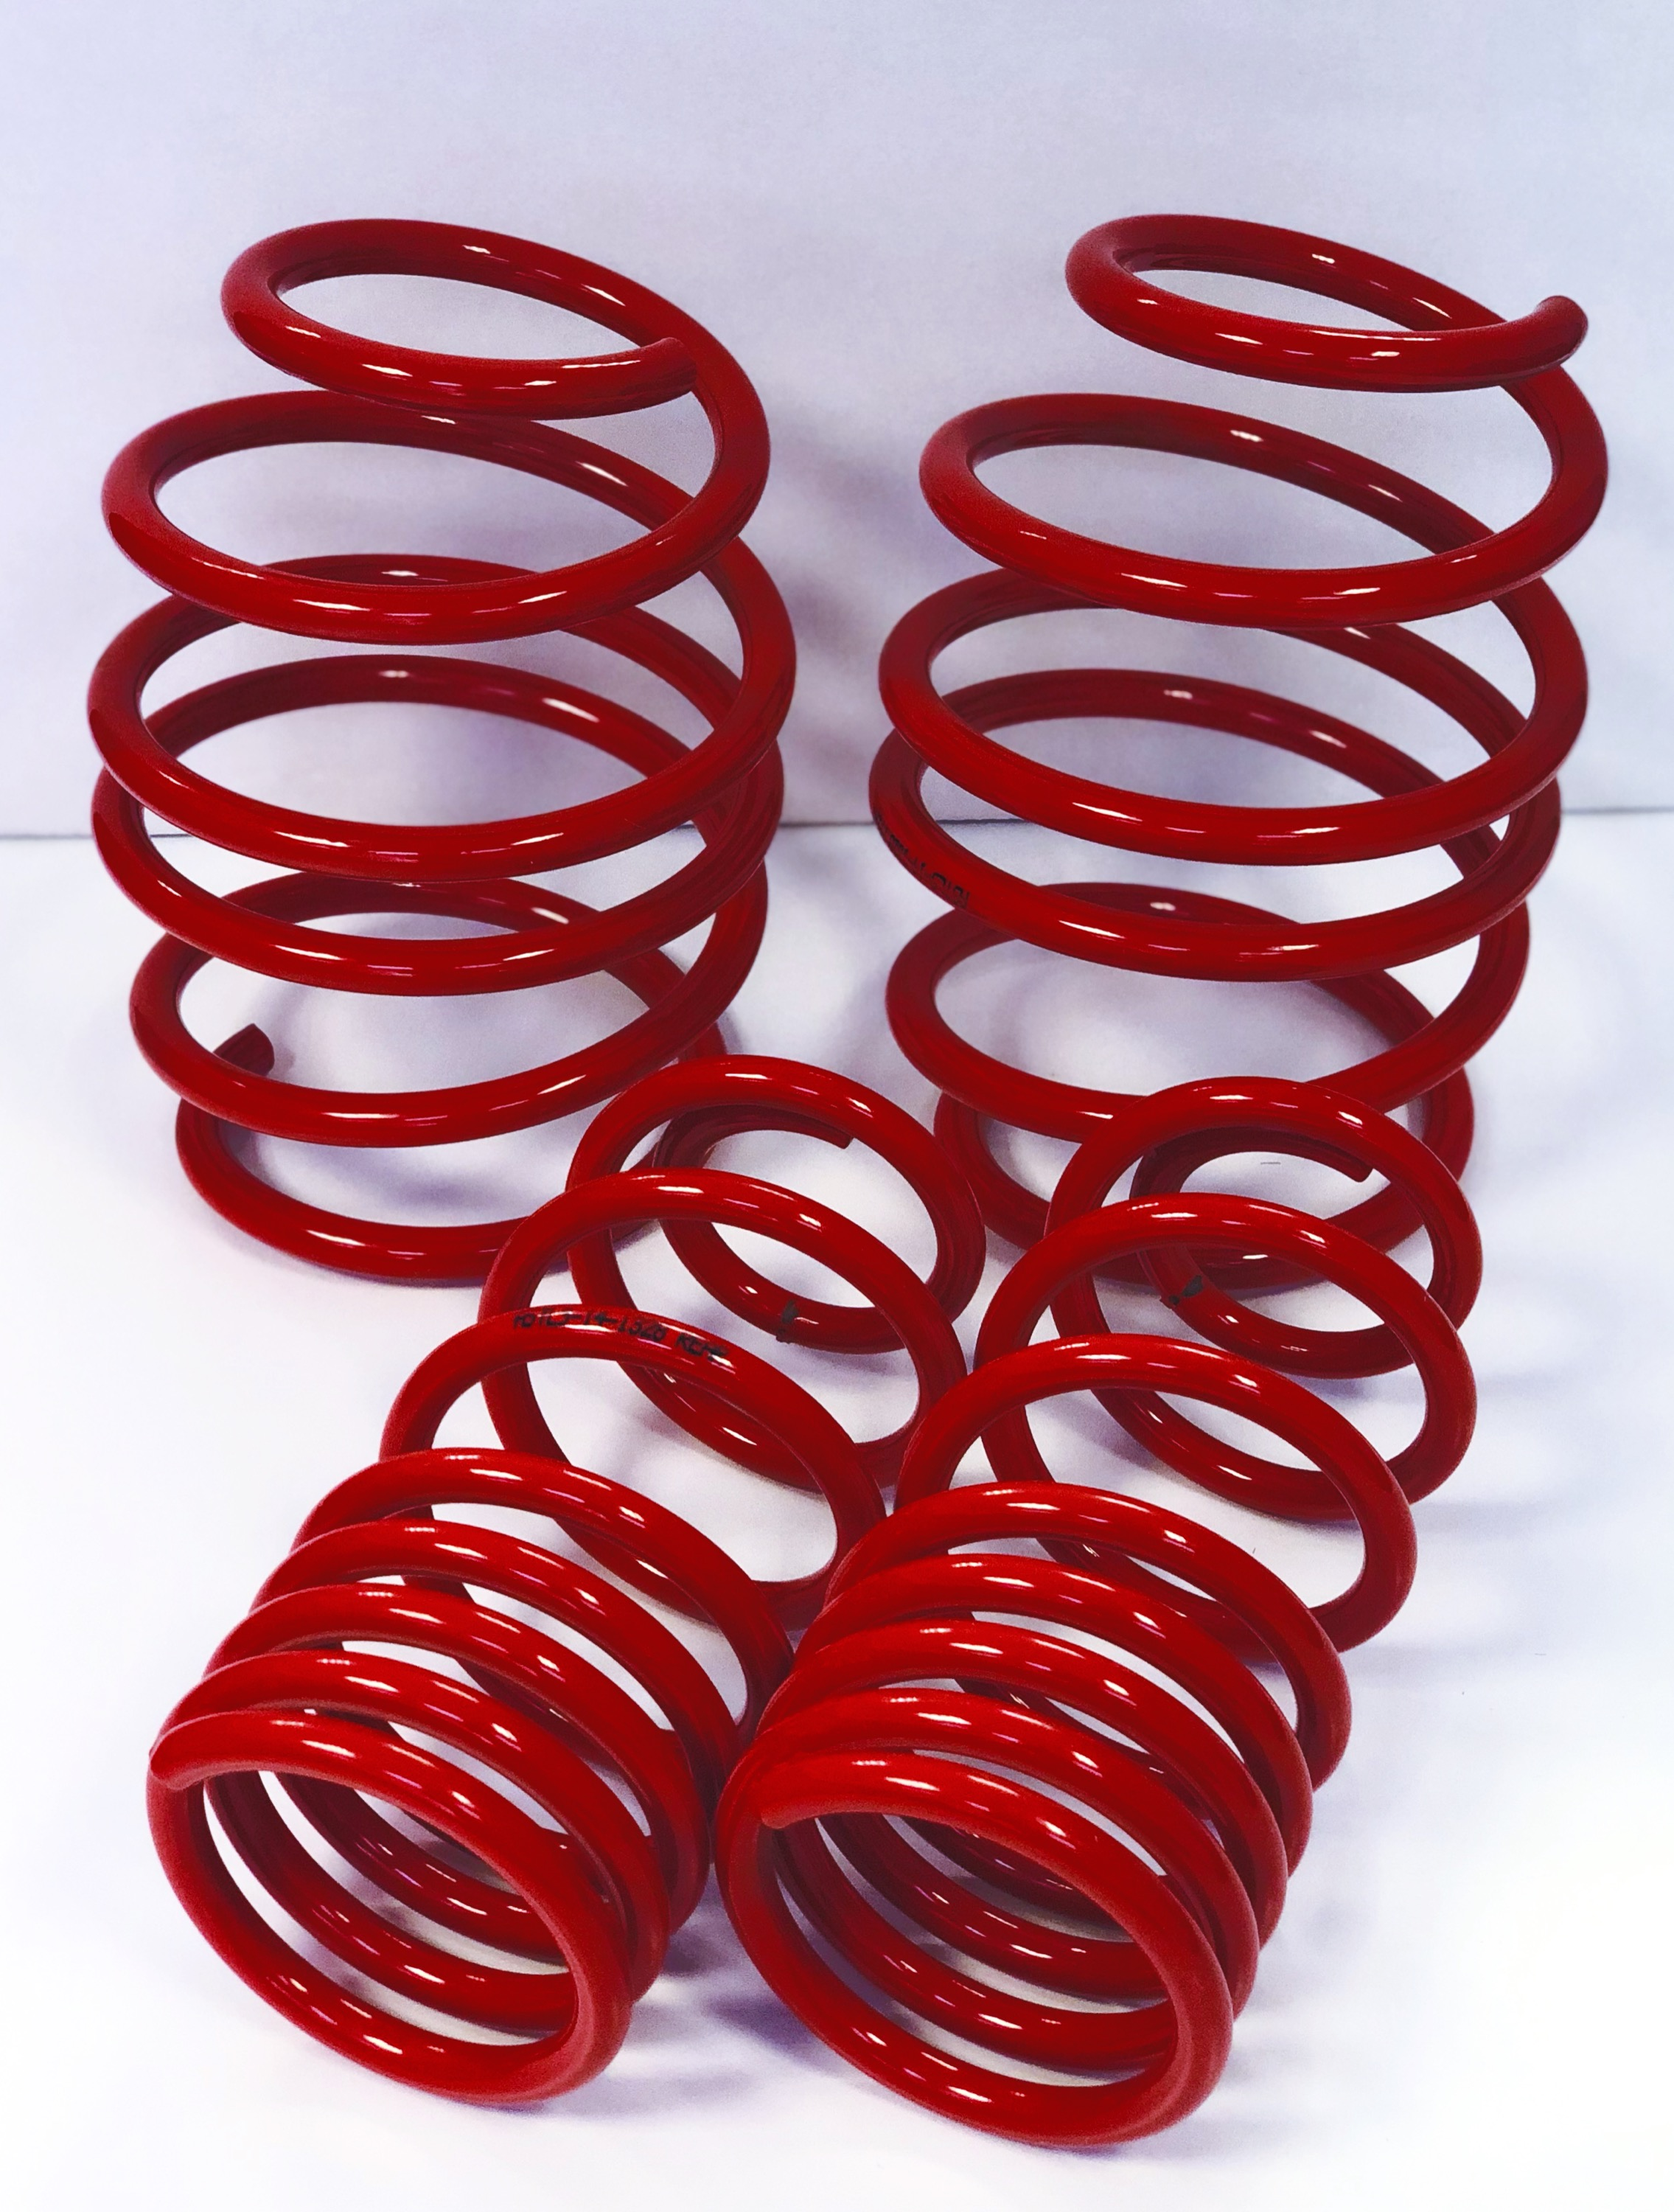 Vauxhall KADETT AST Suspension Lowering Springs 80MM